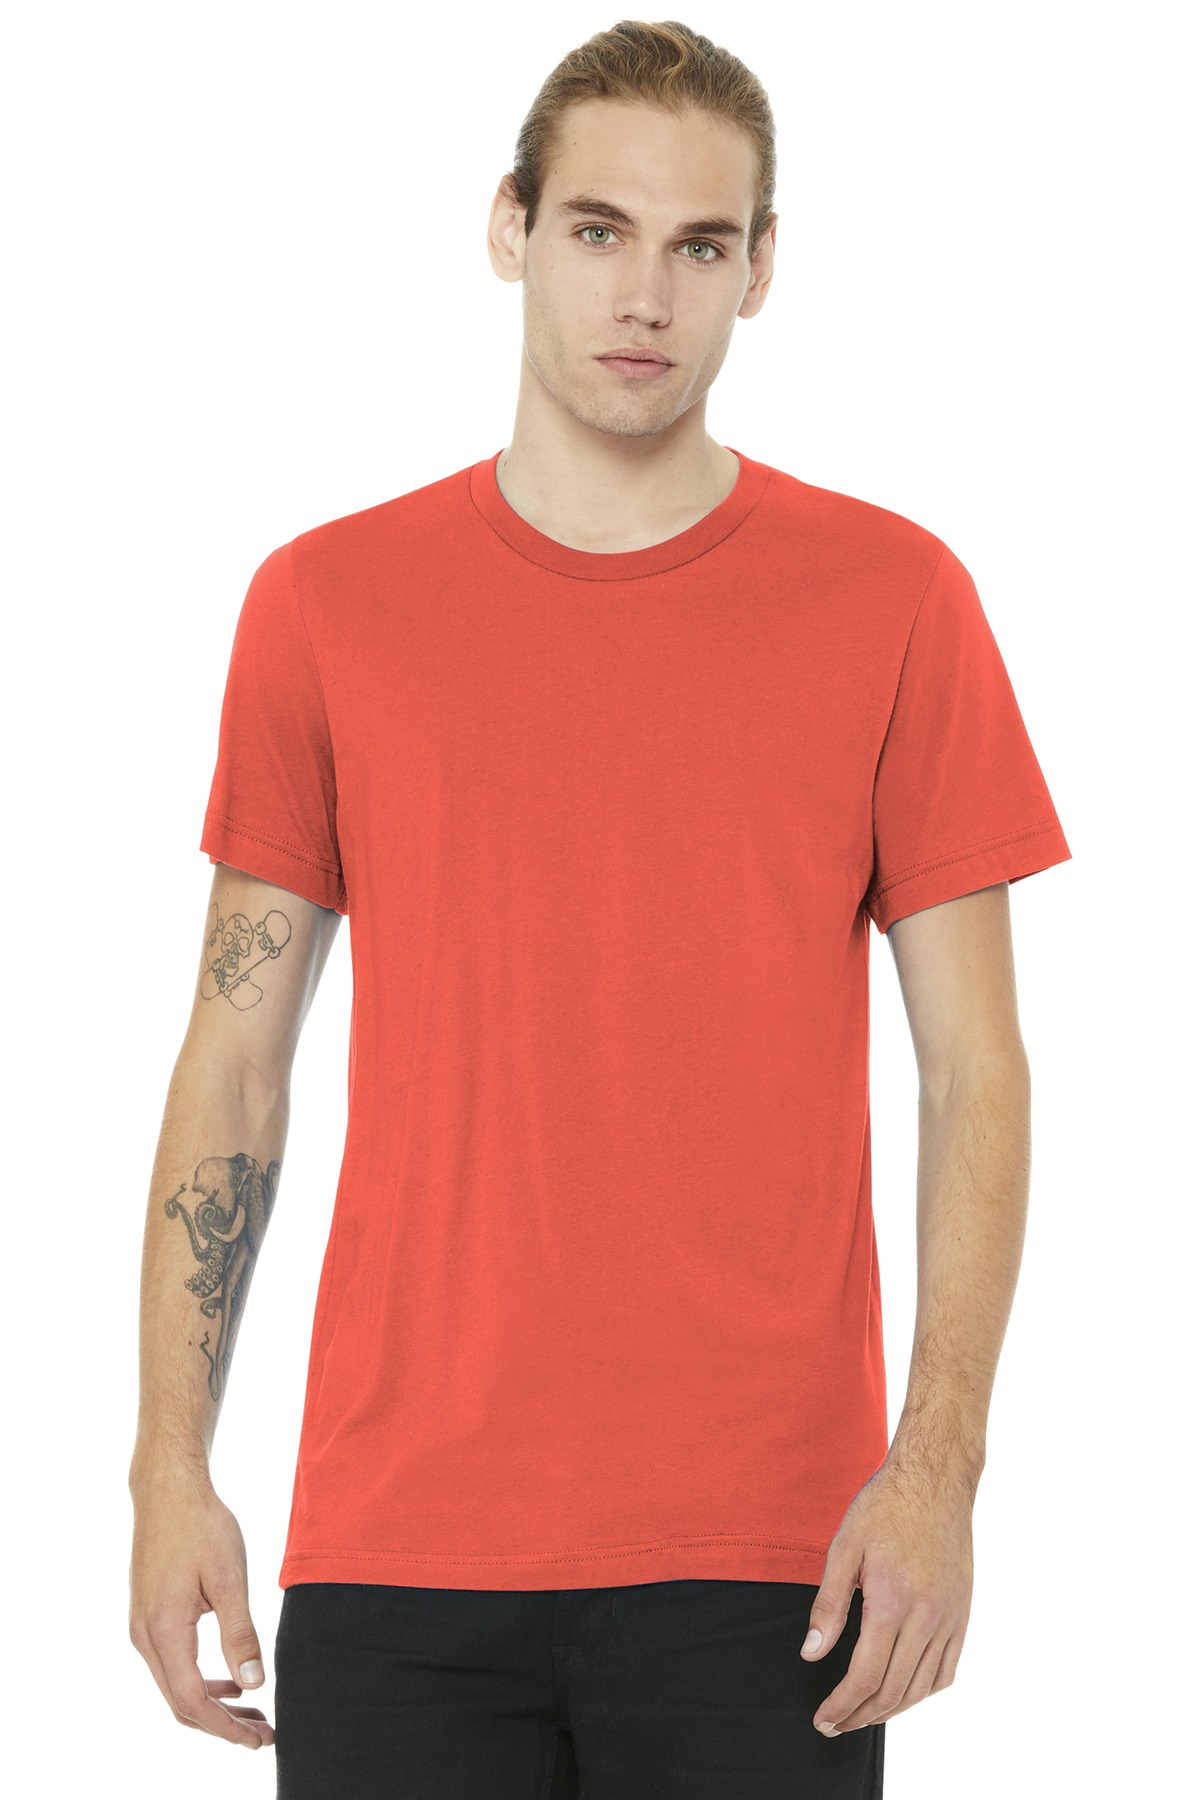 BELLA+CANVAS  ®  Unisex Jersey Short Sleeve Tee. BC3001 - Coral